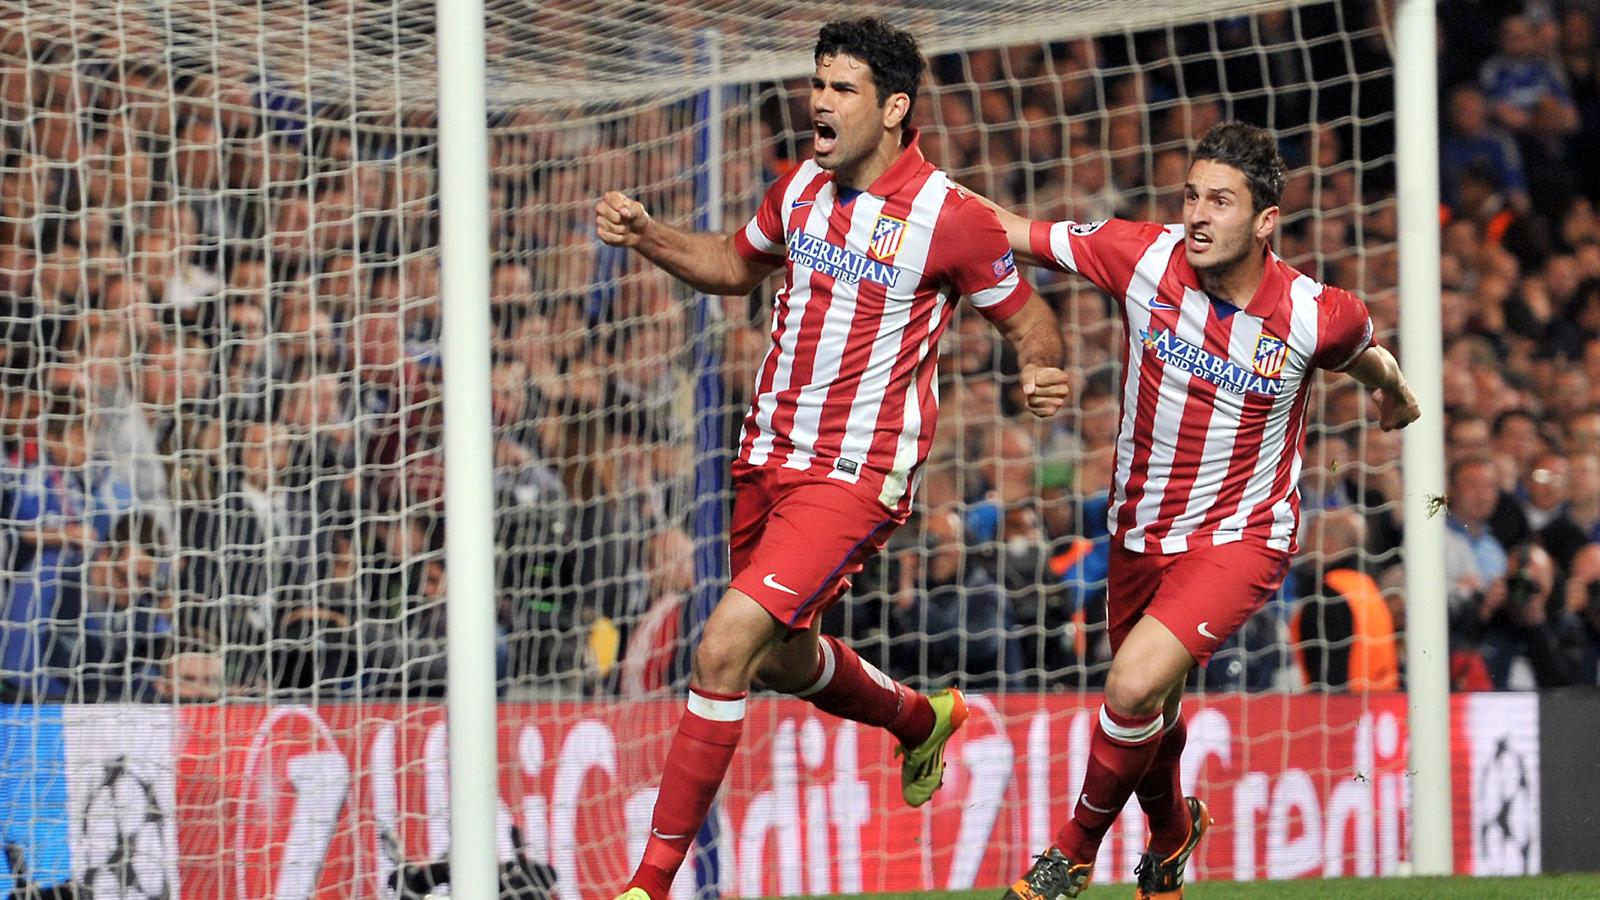 Diego Costa (Atlético Madrid), auteur du 2e but face à Chelsea 2014